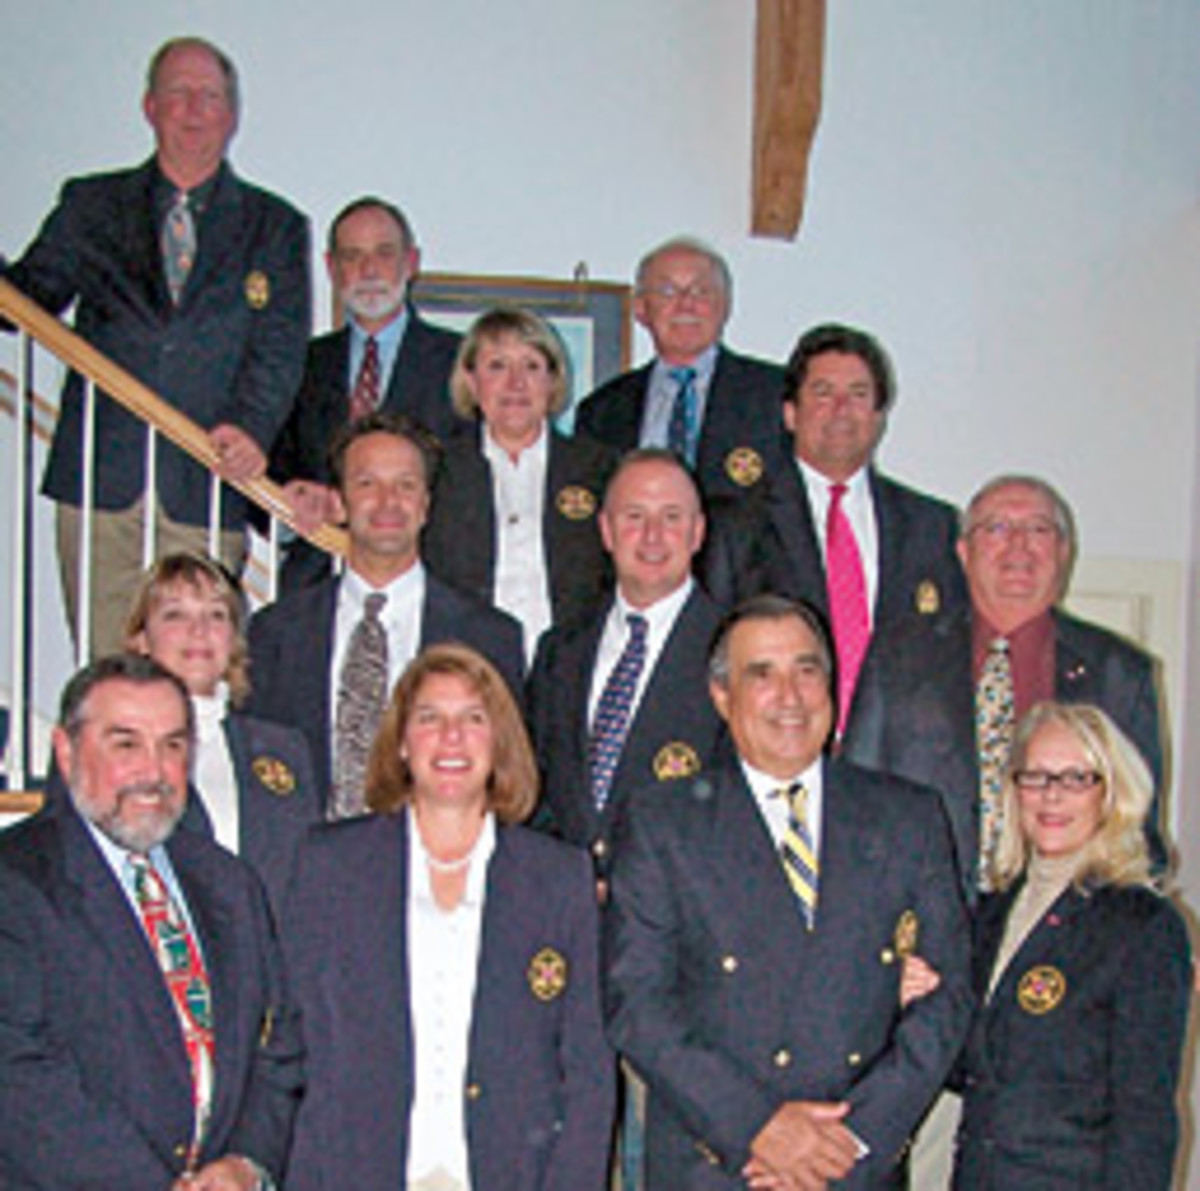 The new slate of officers for the Mystic River Yacht Club pose in formal yacht club attire after the annual meeting.